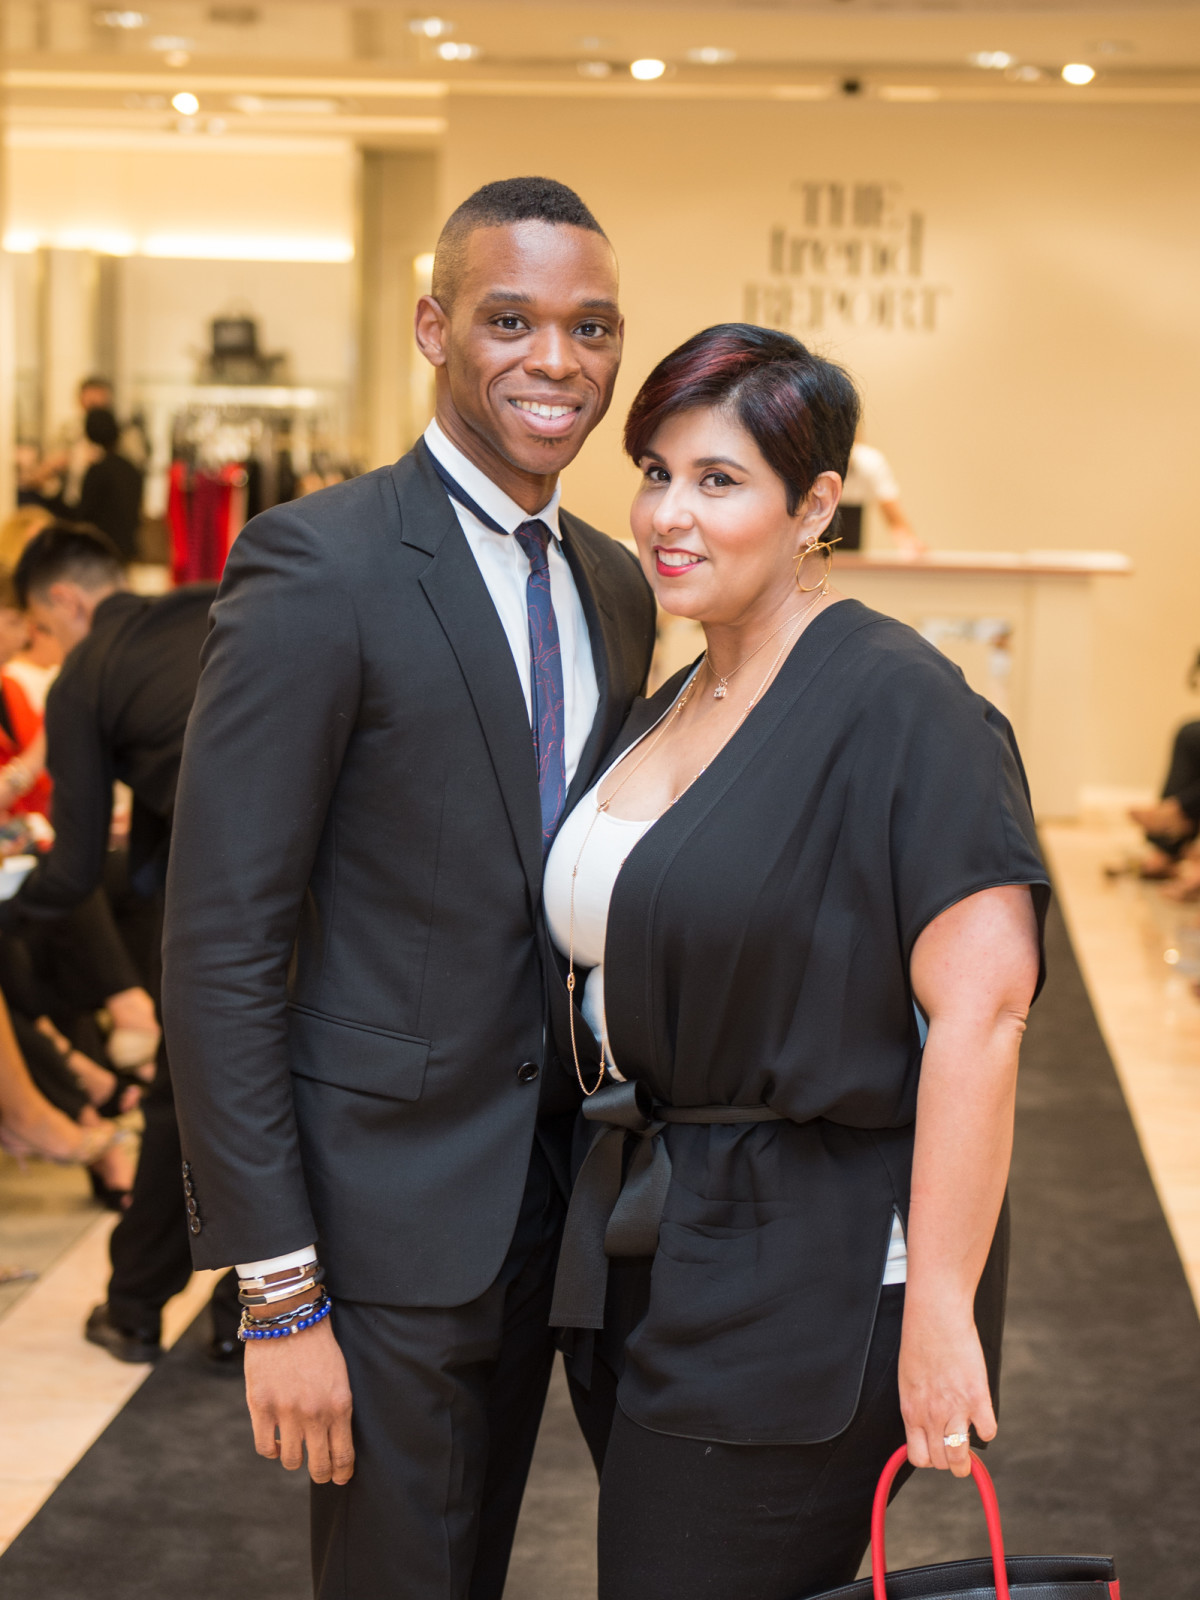 Neiman Marcus Trend Event Christopher Mitchell and Phyllis Rodriguez